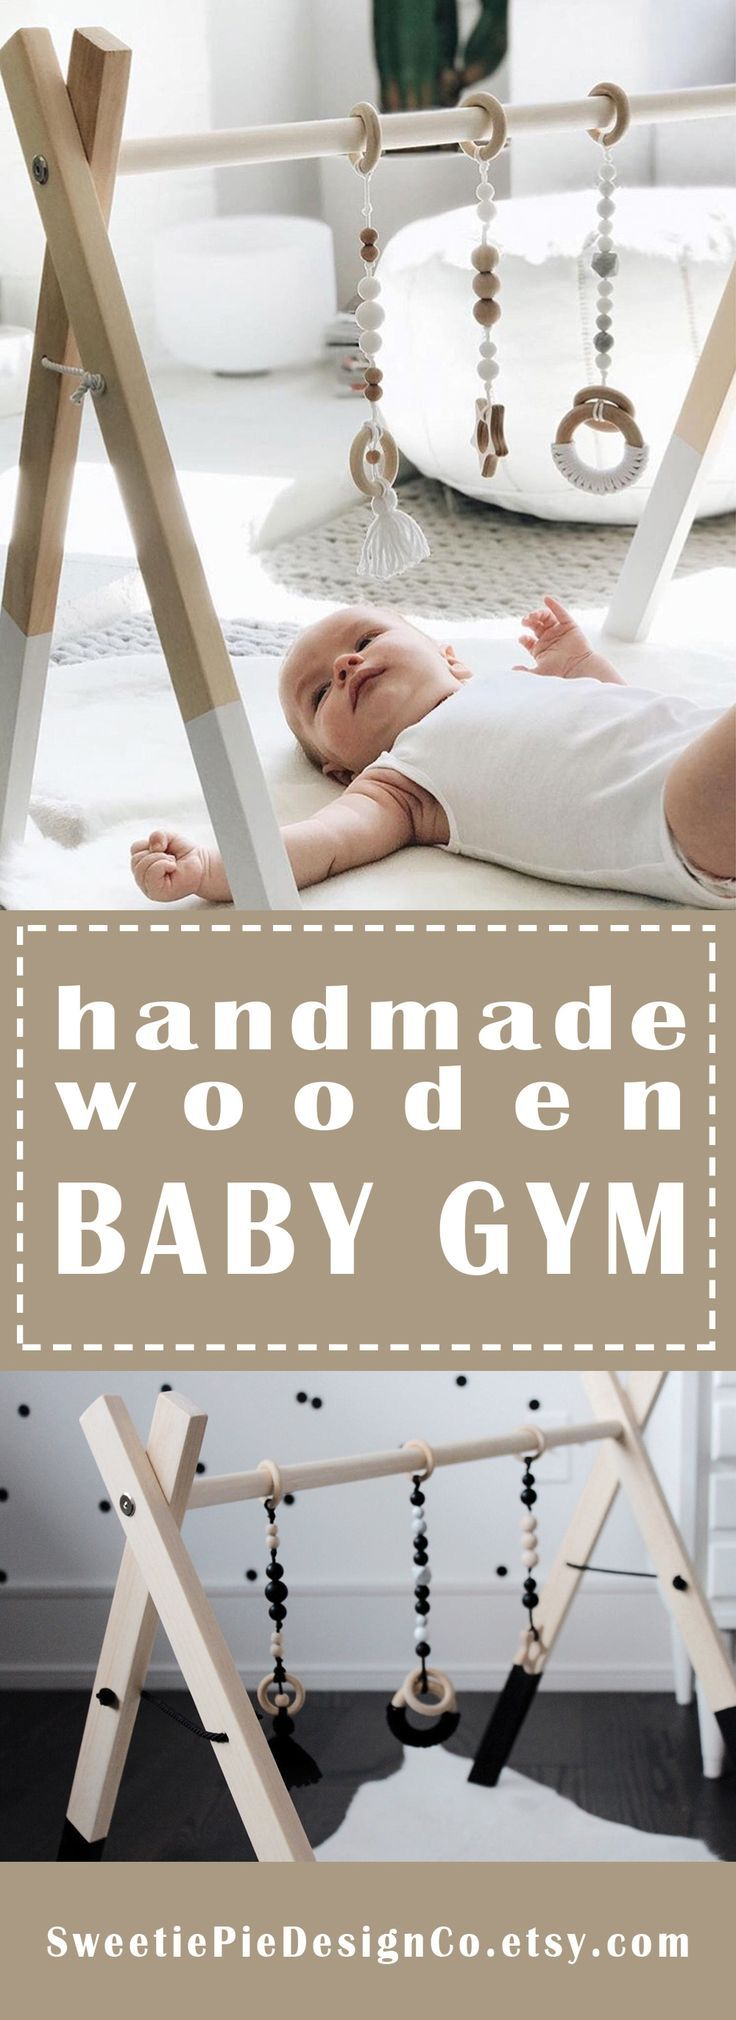 So beautiful and would look amazing in a gender neutral or monochrome nursery! This handmade wooden baby activity gym provides exceptional developmental stimulation for your littlest sweetie pie + is perfectly complementary to your beautiful nursery and home. #nursery #babygym #handmade #ad